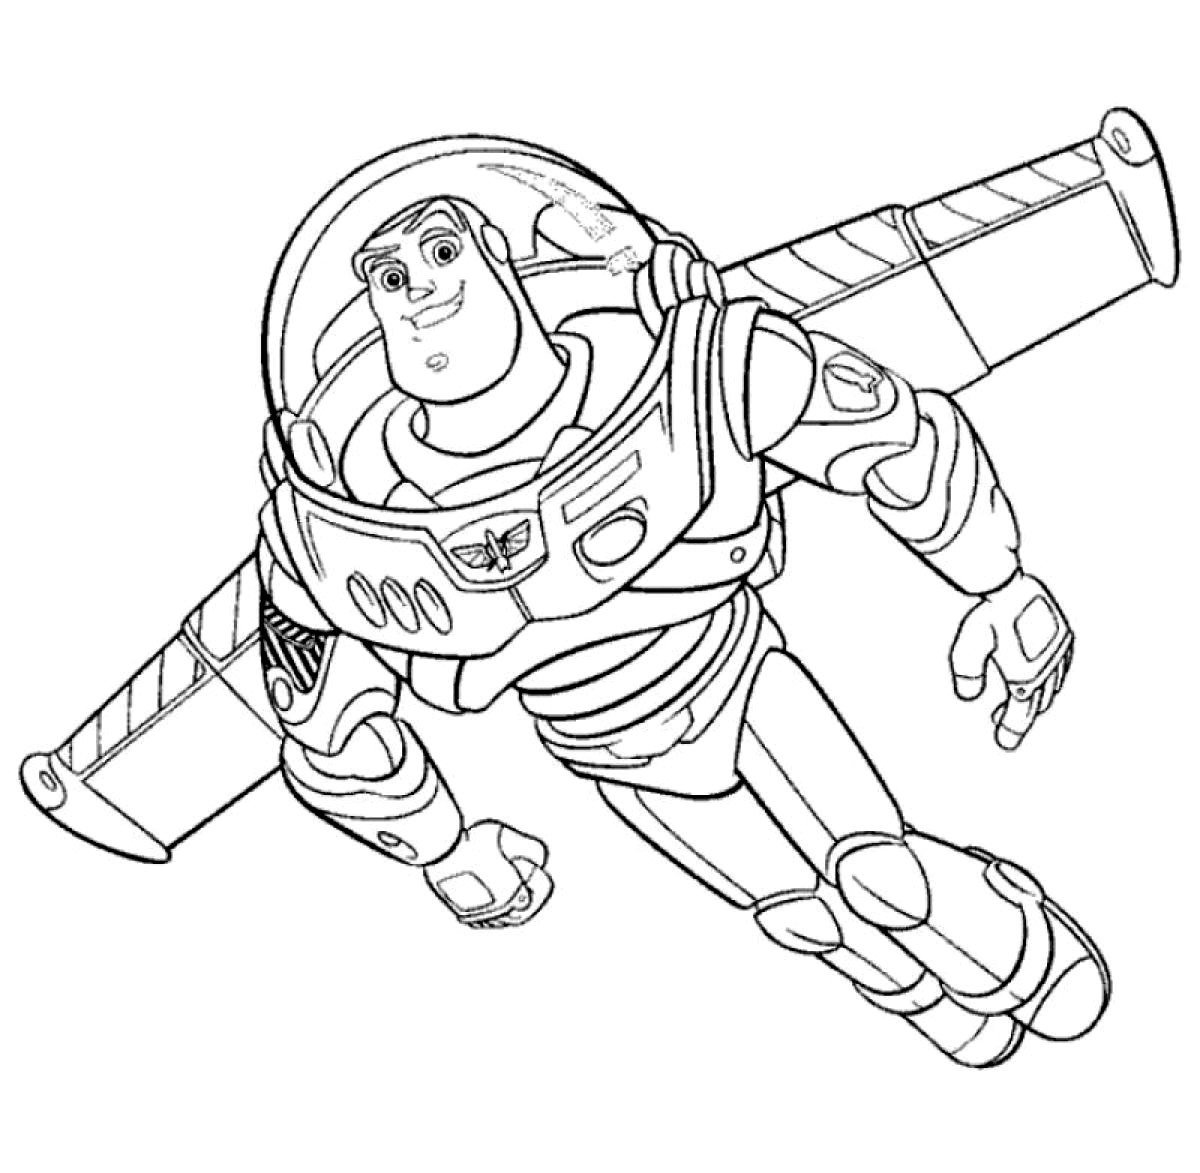 Printable Toy Story Coloring Pages Coloring Me Story Coloring Pages